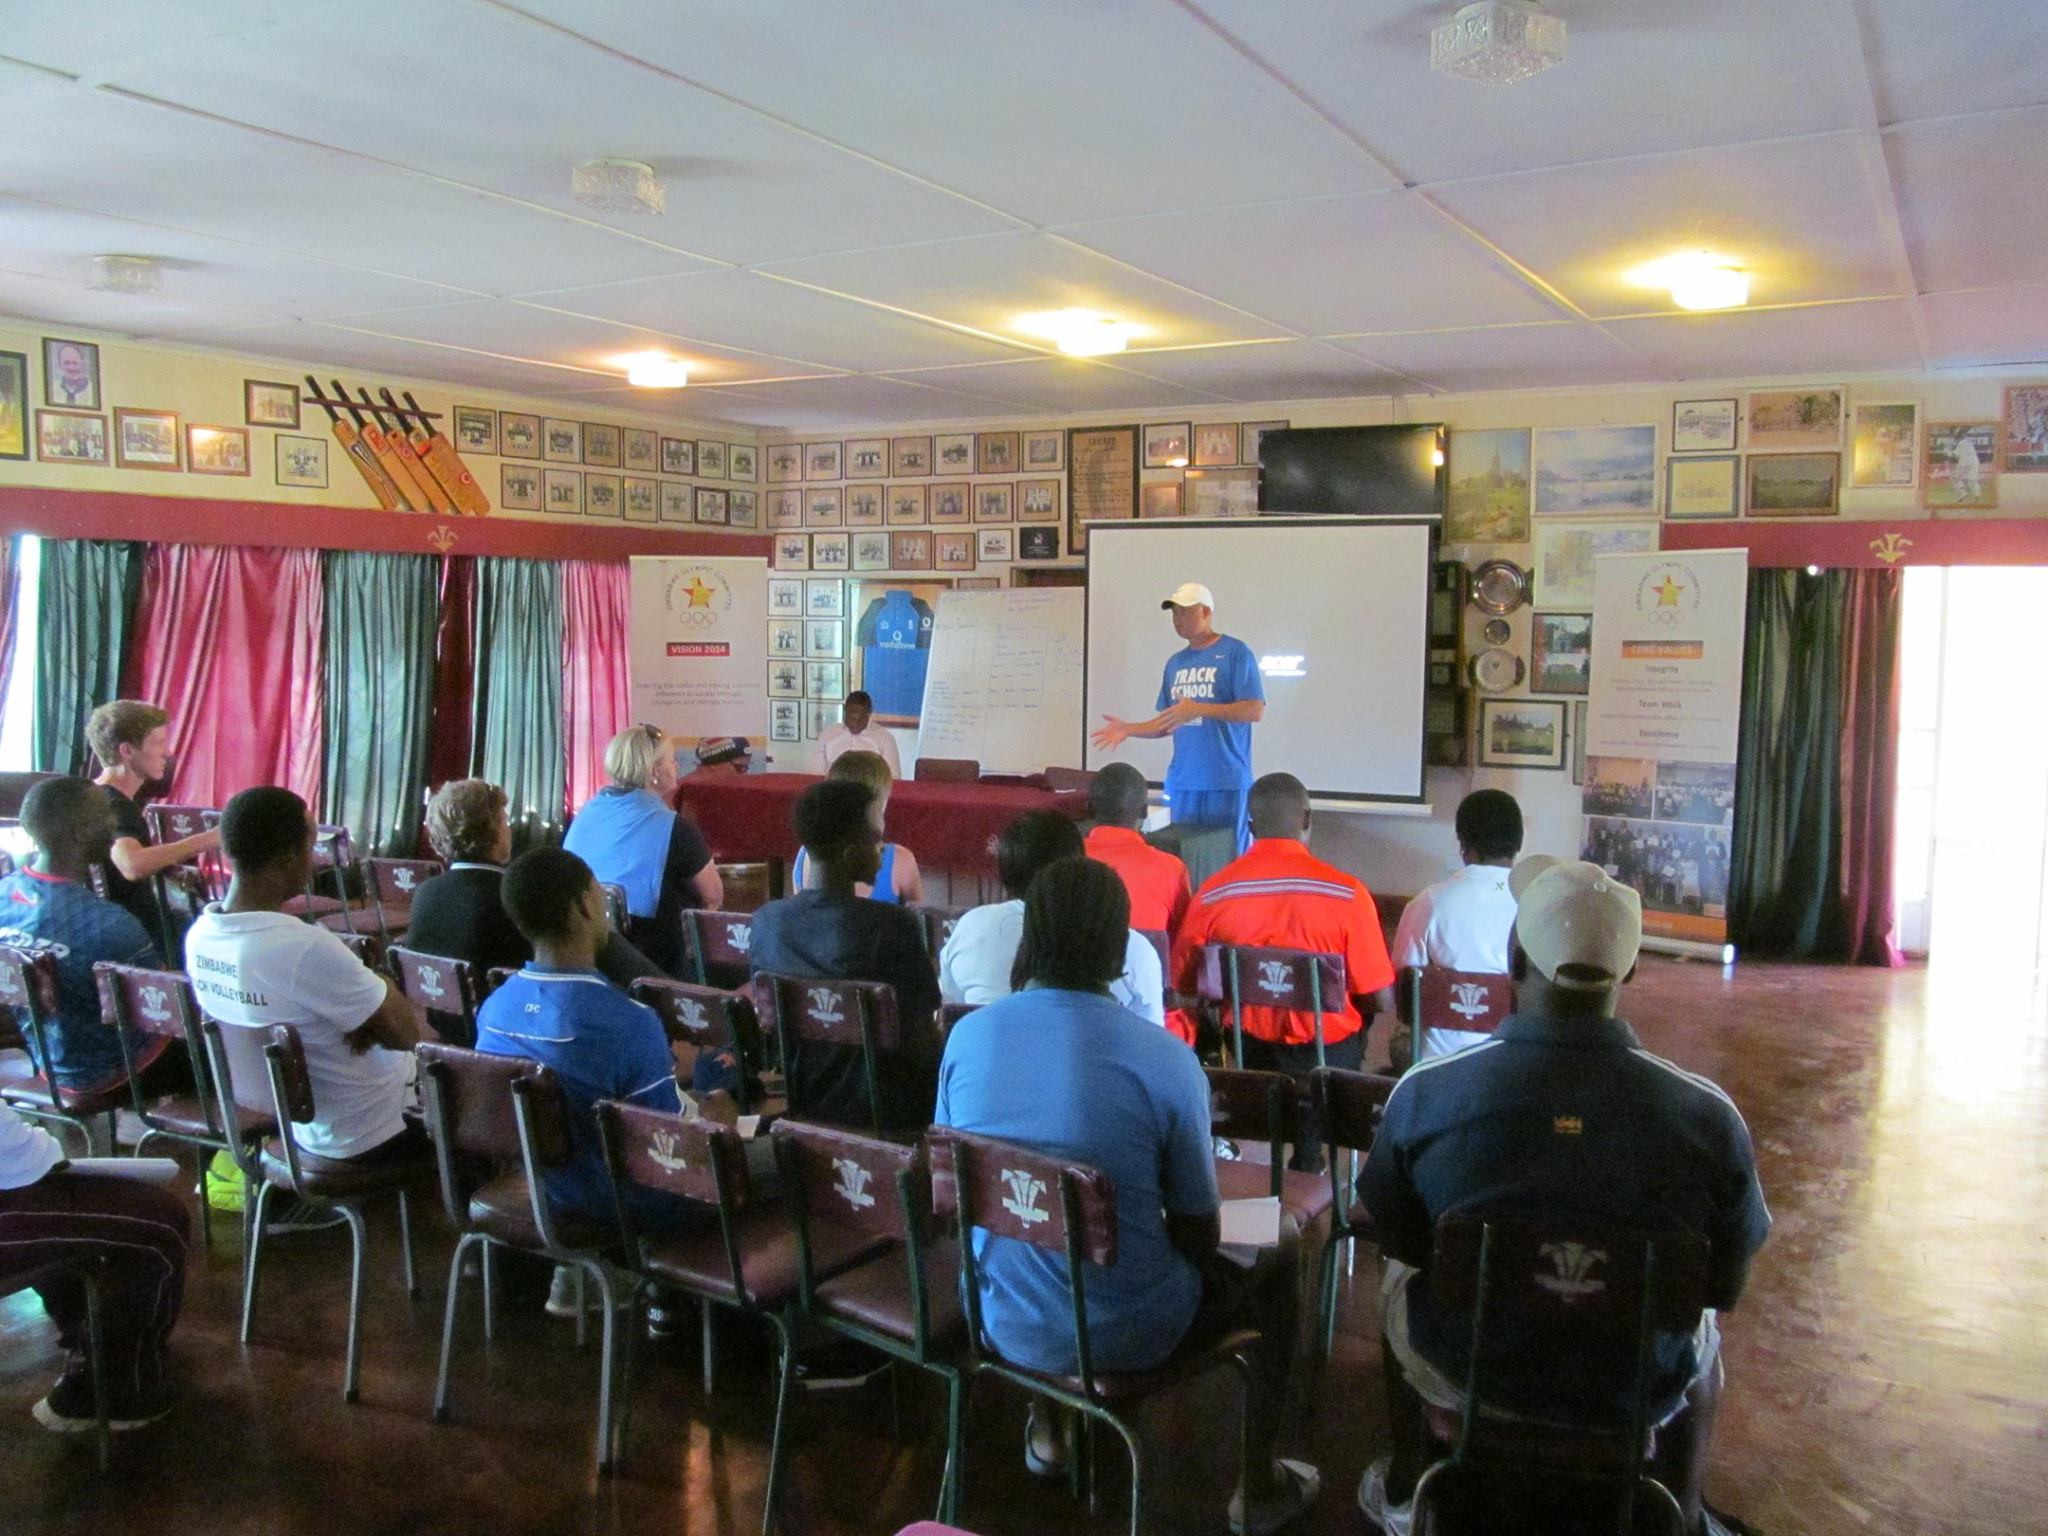 Zimbabwe Olympic Committee host sport science lecture led by former athlete